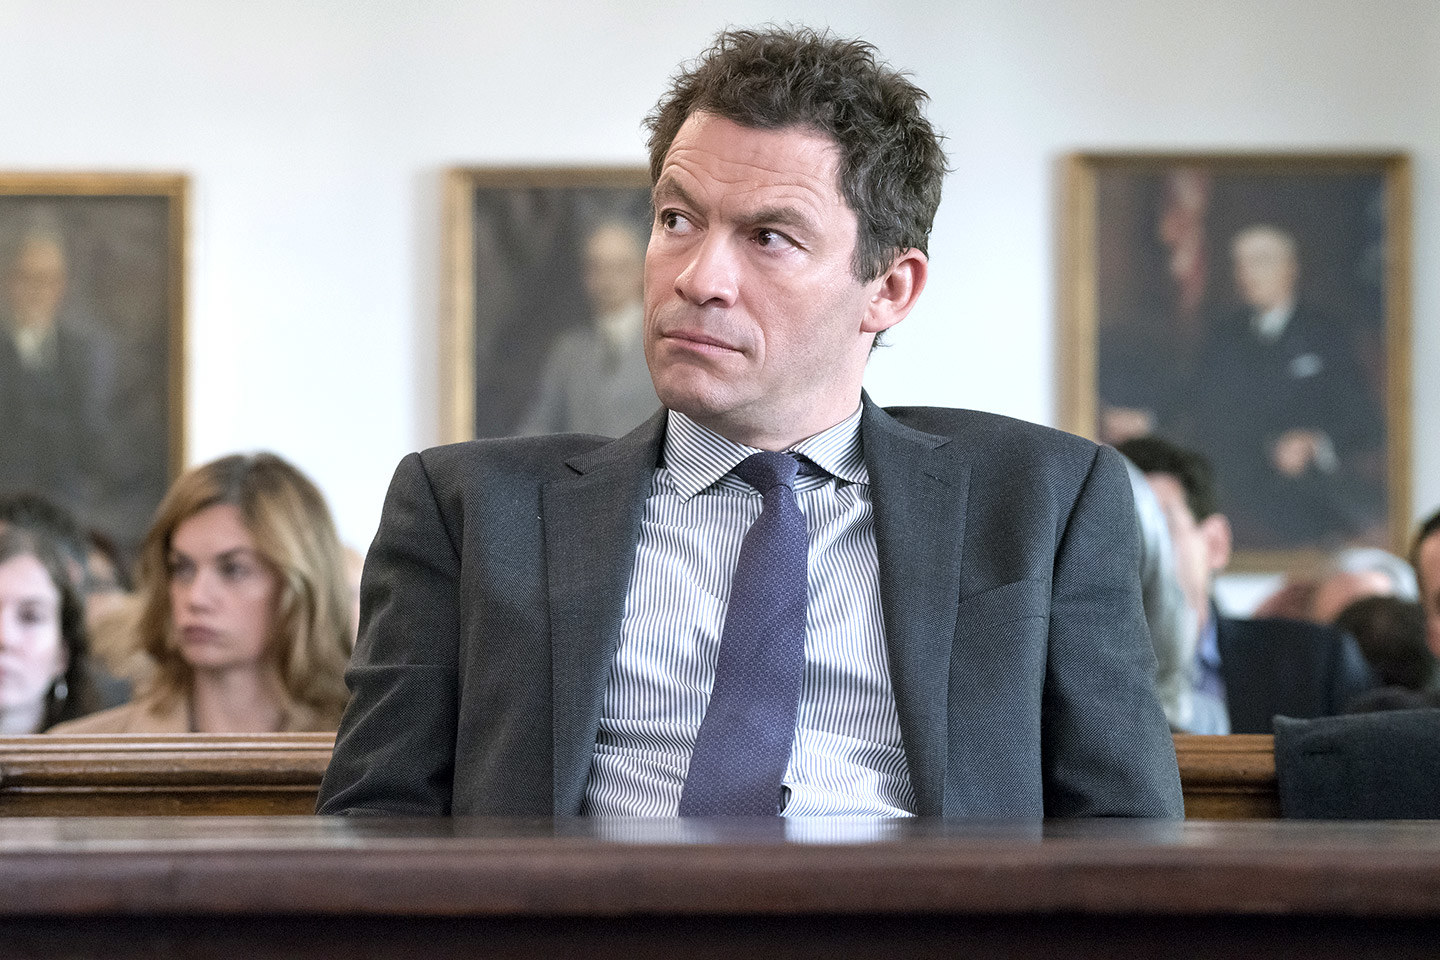 The Affair - 02x12 - Episode 12